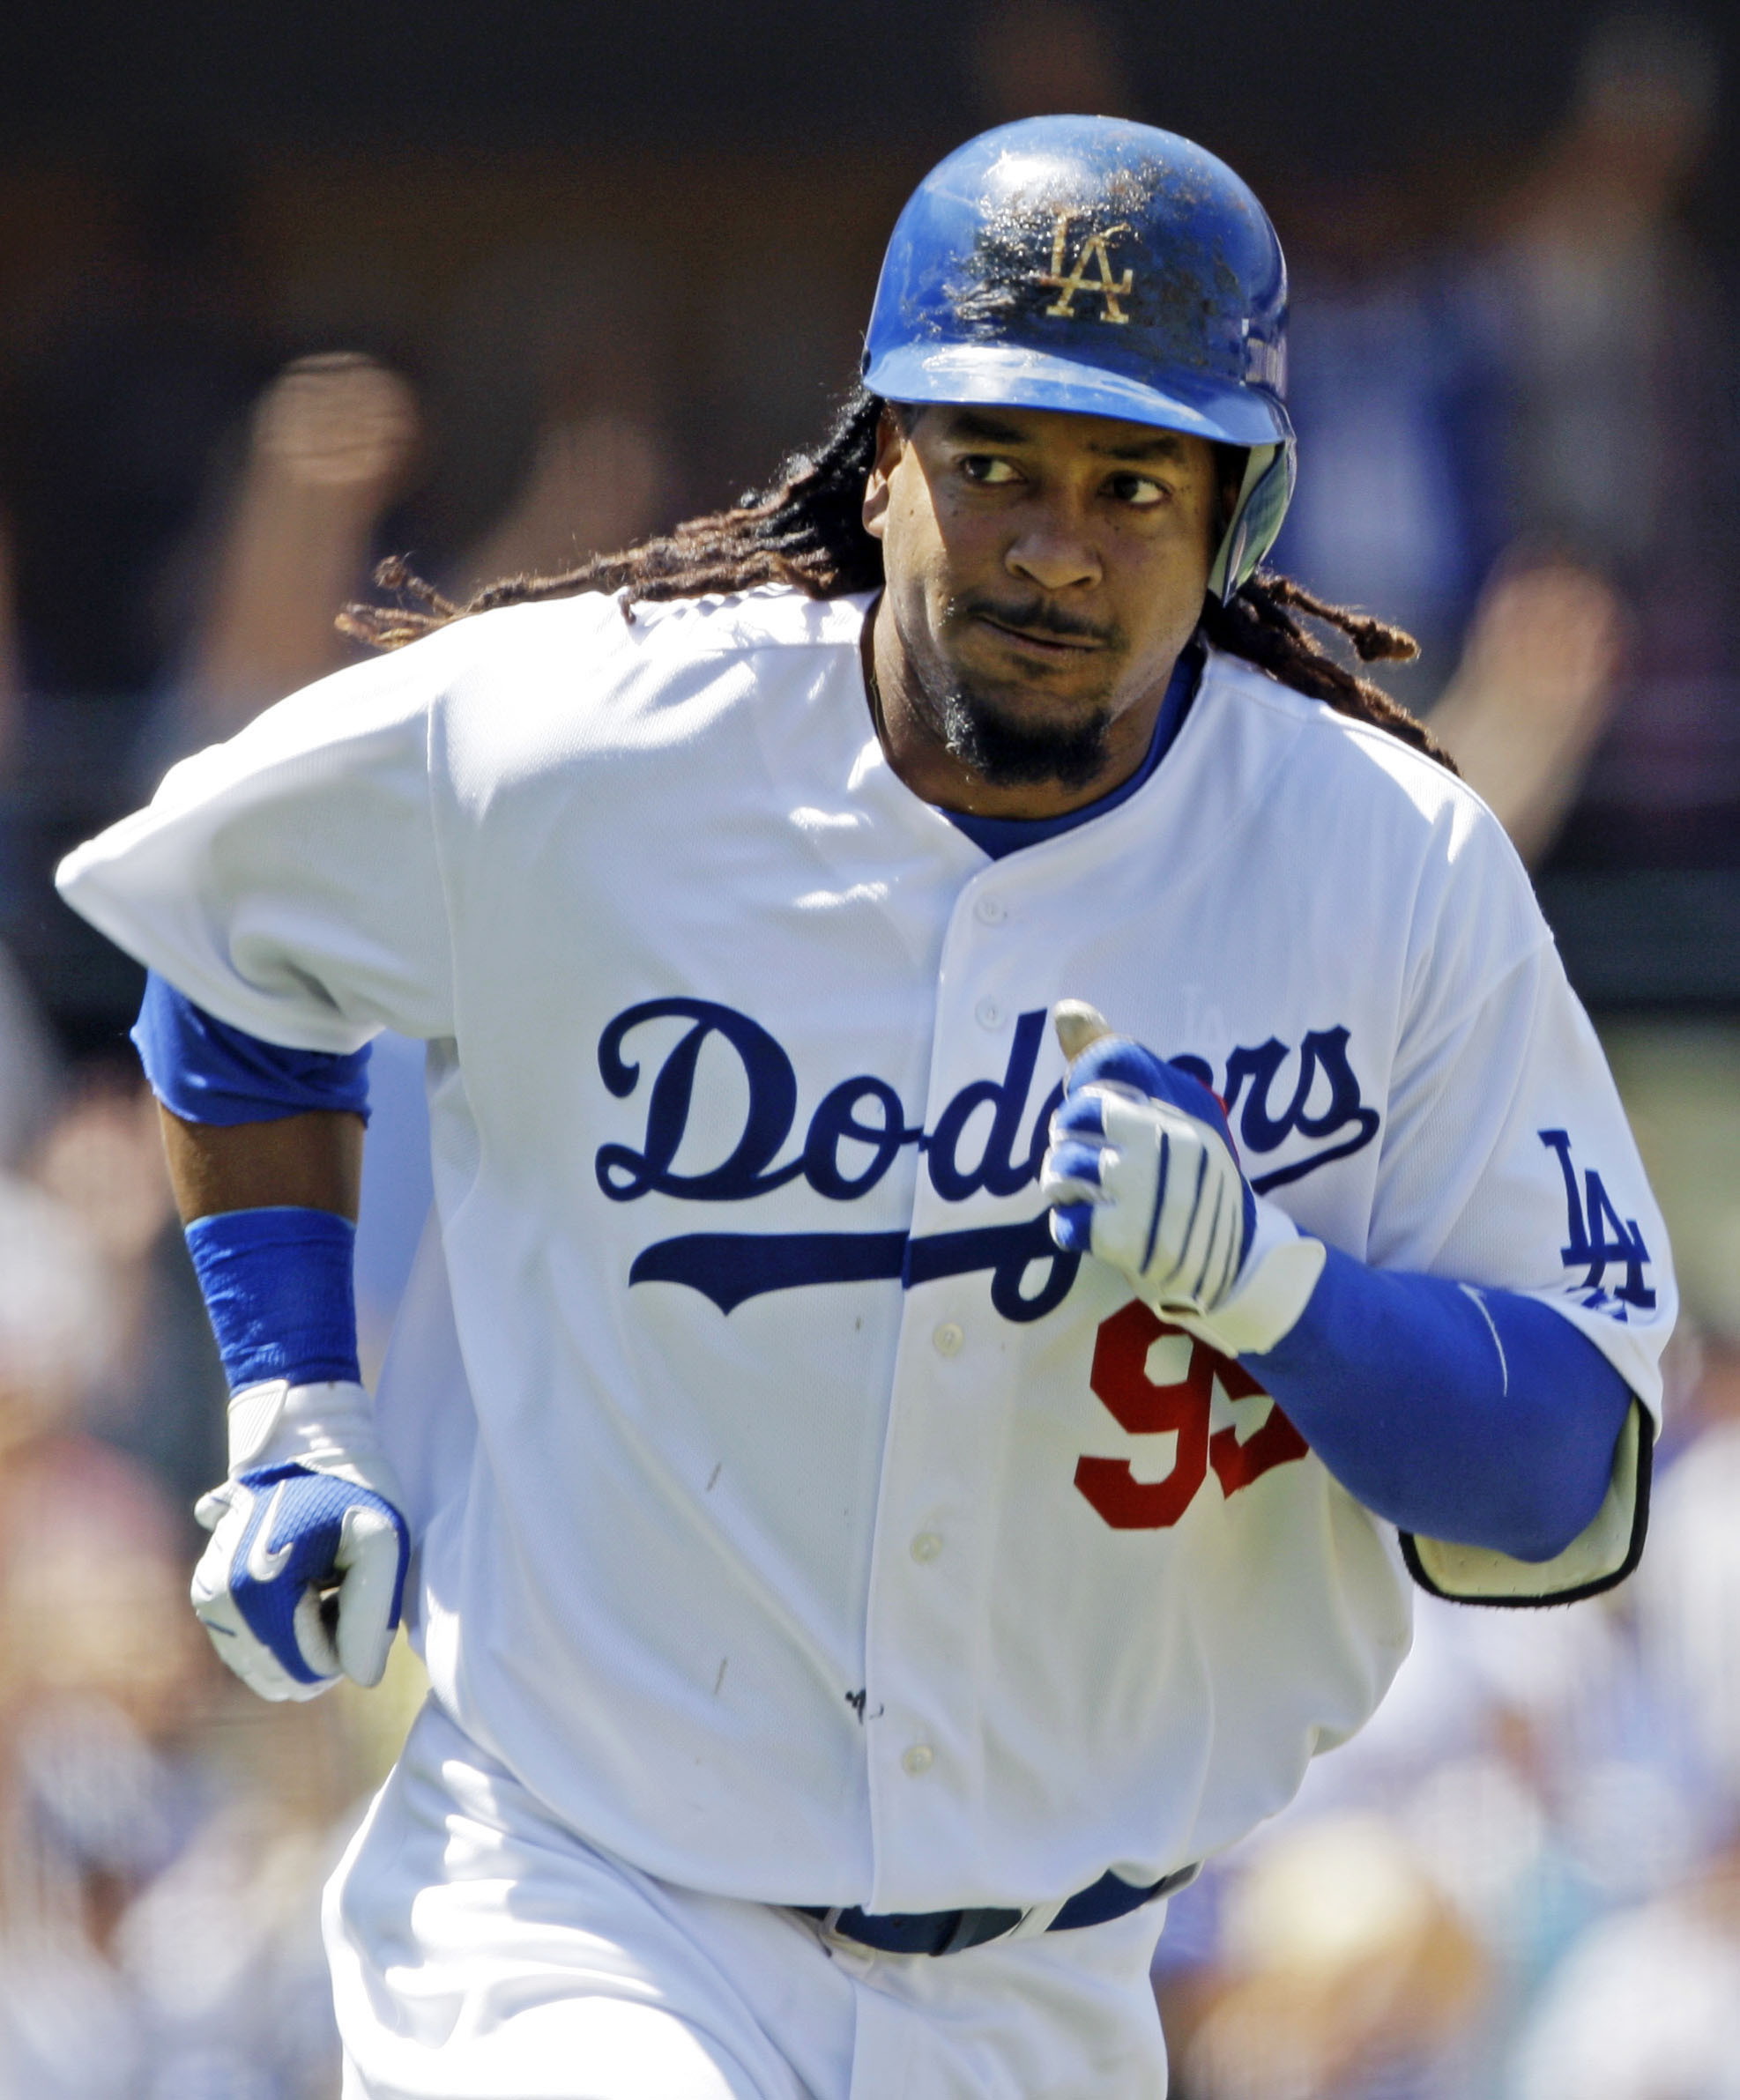 Ramirez in 2009 with the Dodgers. (AP)